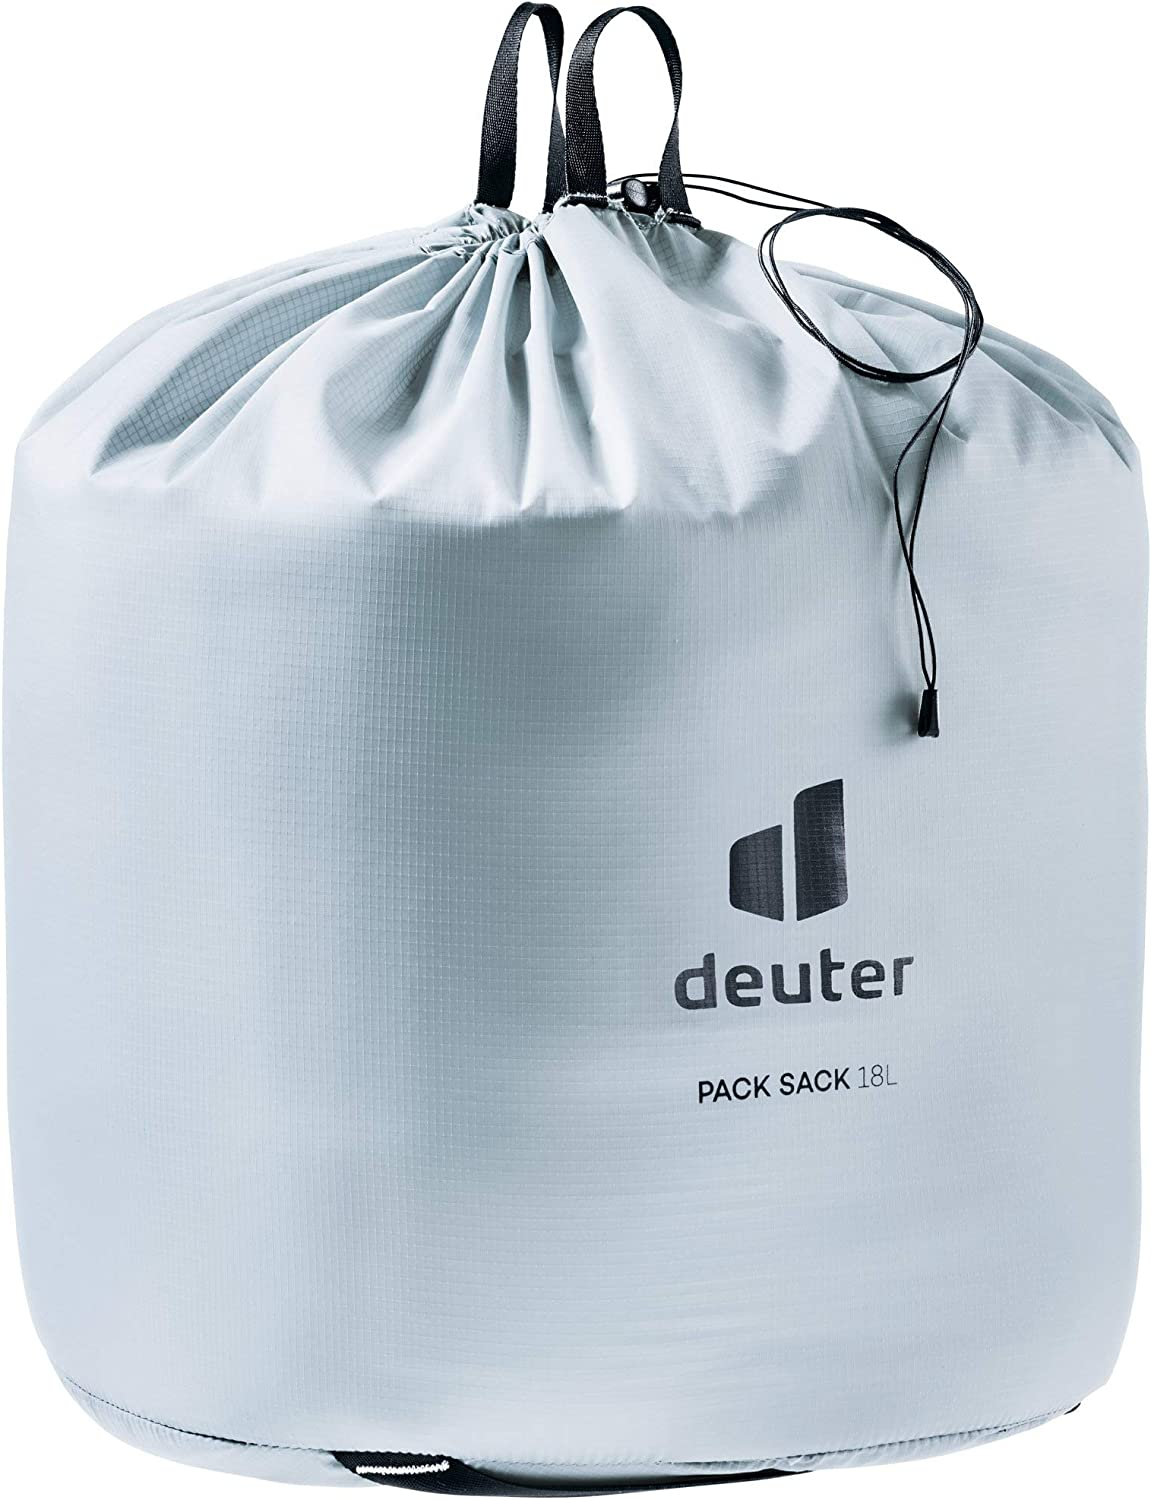 San Francisco Mall Popular shop is the lowest price challenge Deuter Unisex_Adult Pack Sack 18 Packsack x 26 29 5 Tin